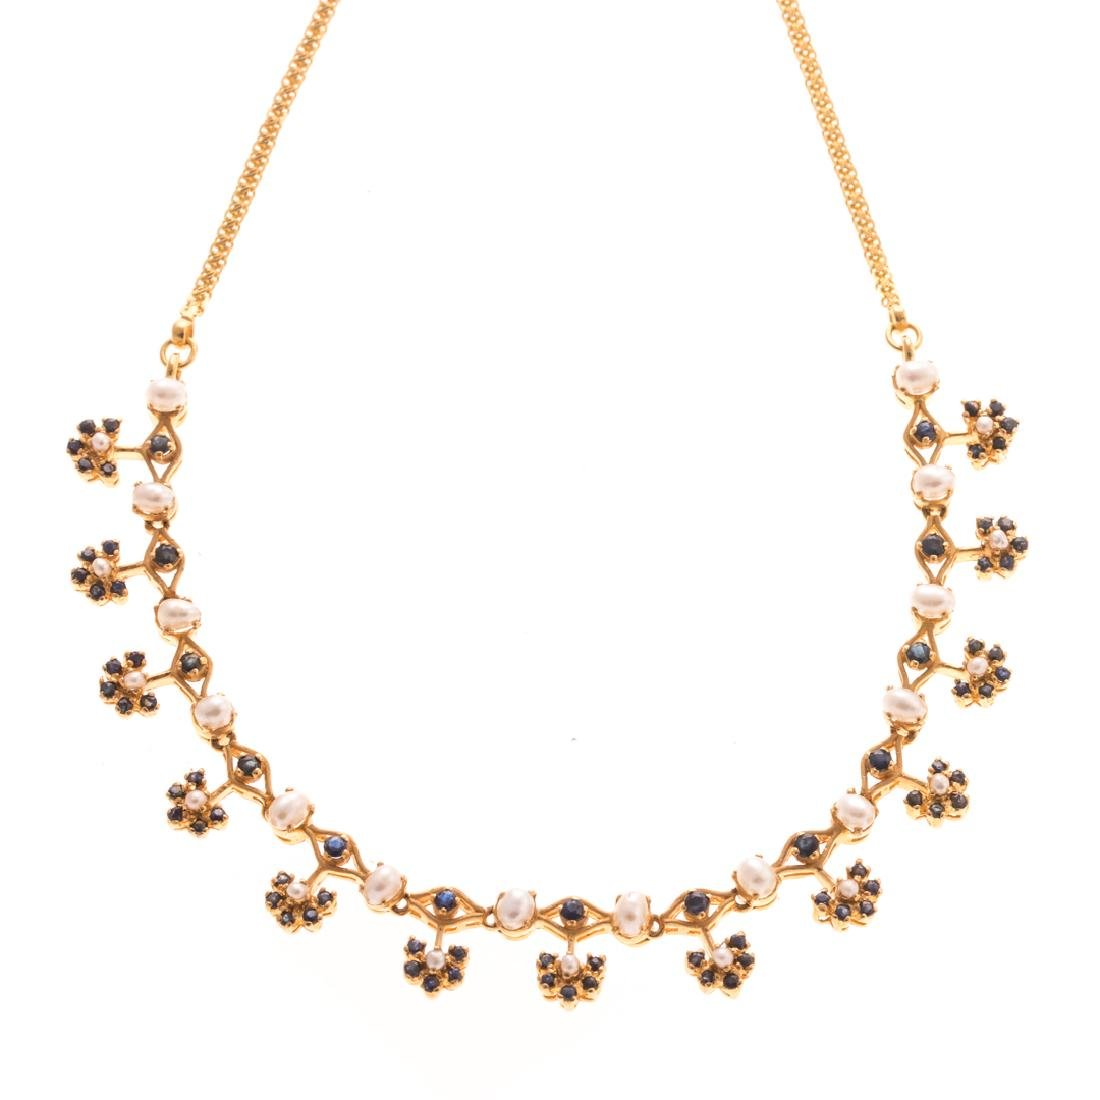 A Lady's 22K Gold Necklace with Pearls & Sapphires